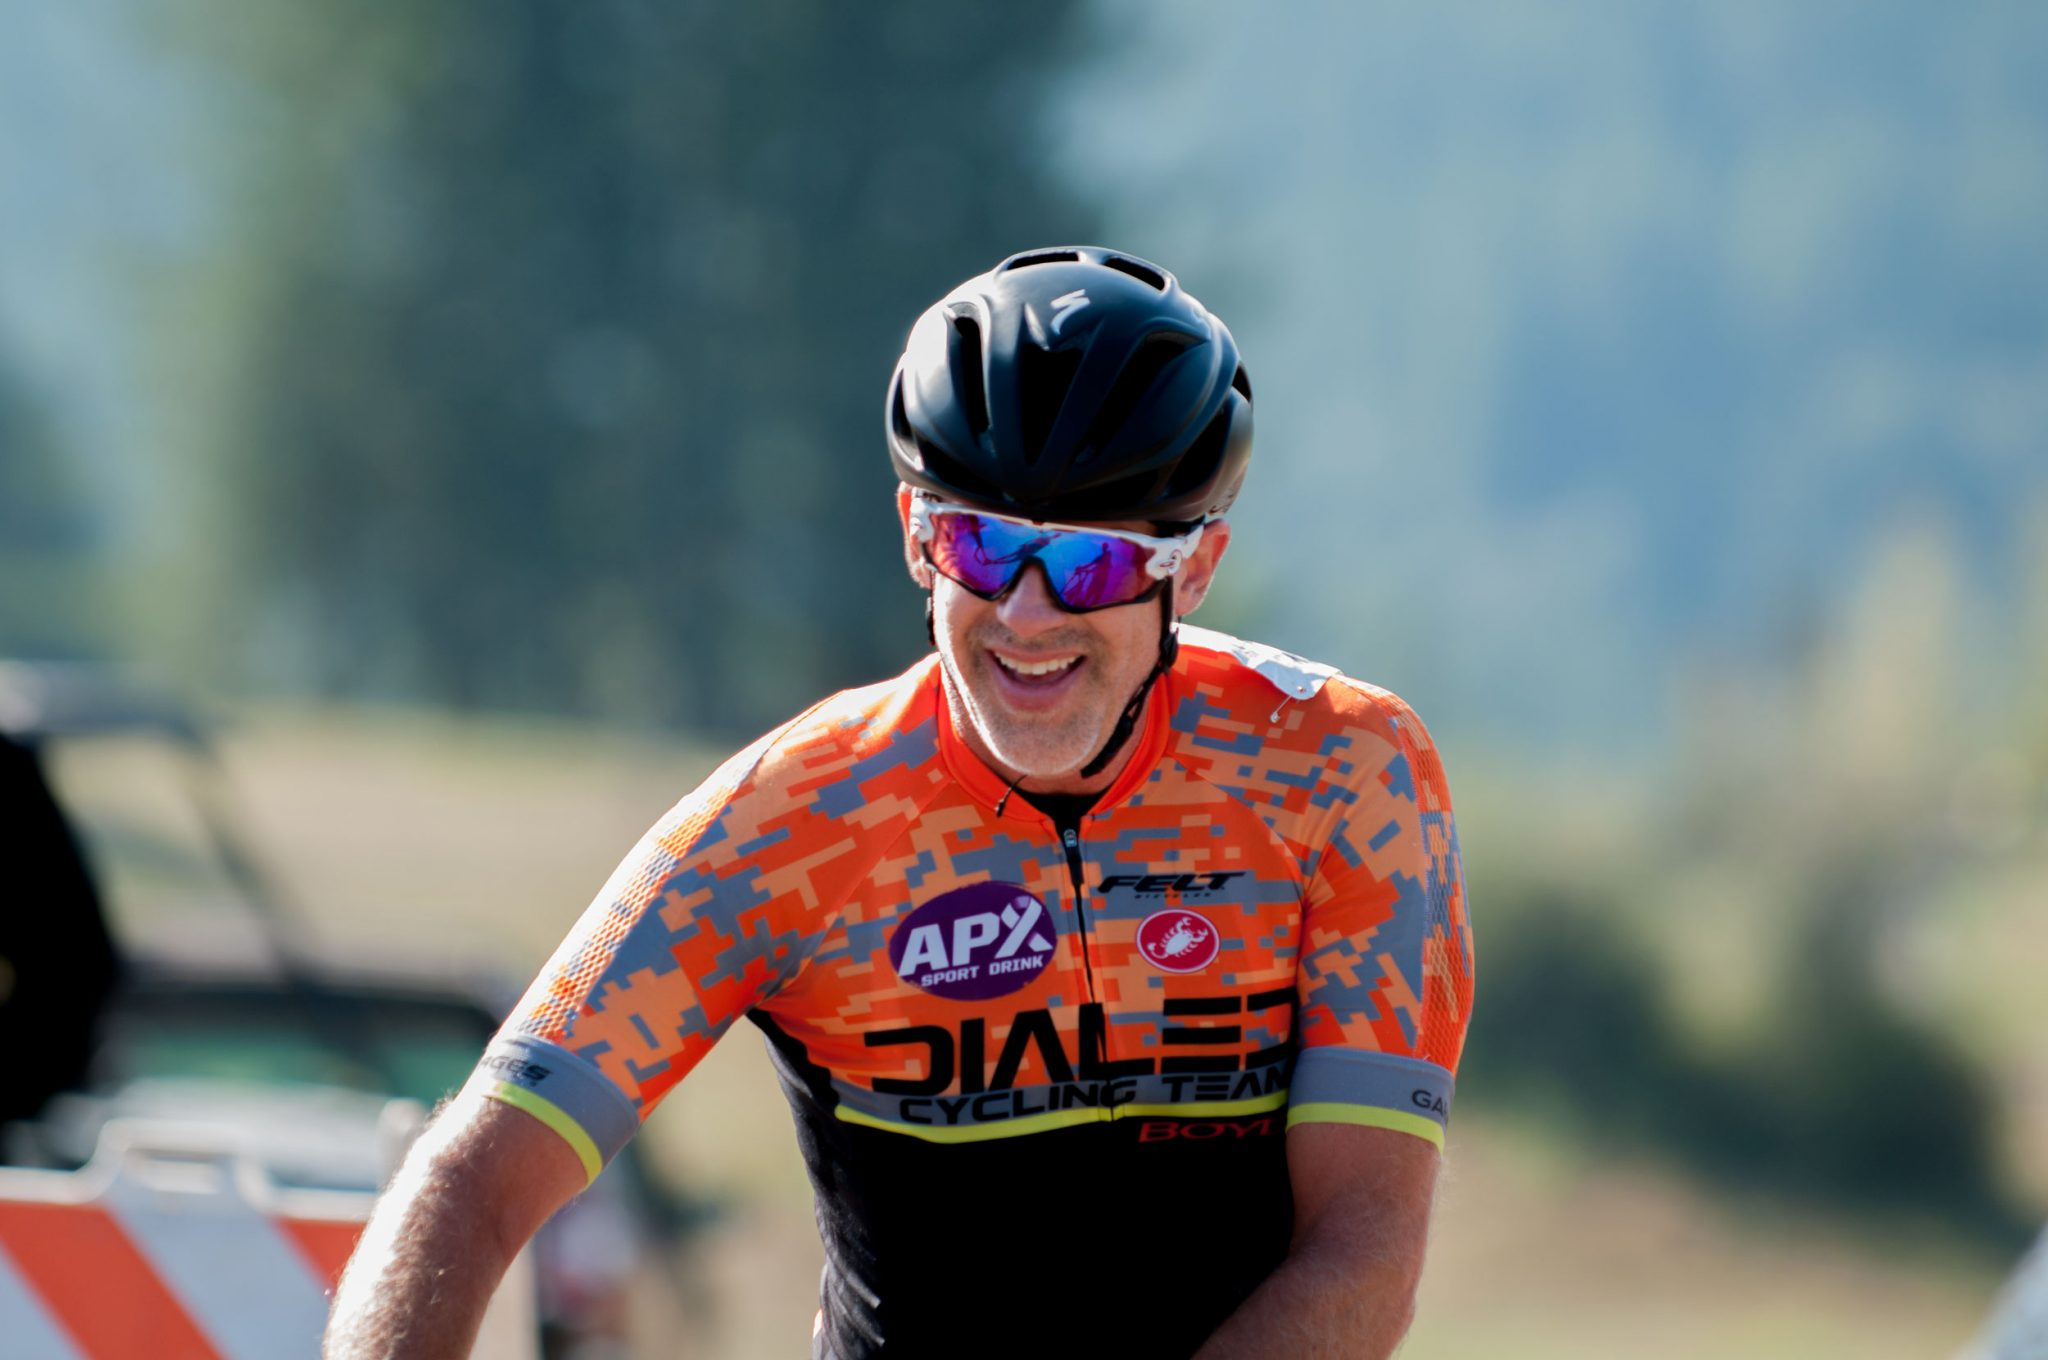 Whitney Phillips | Dialed Cycling Lab